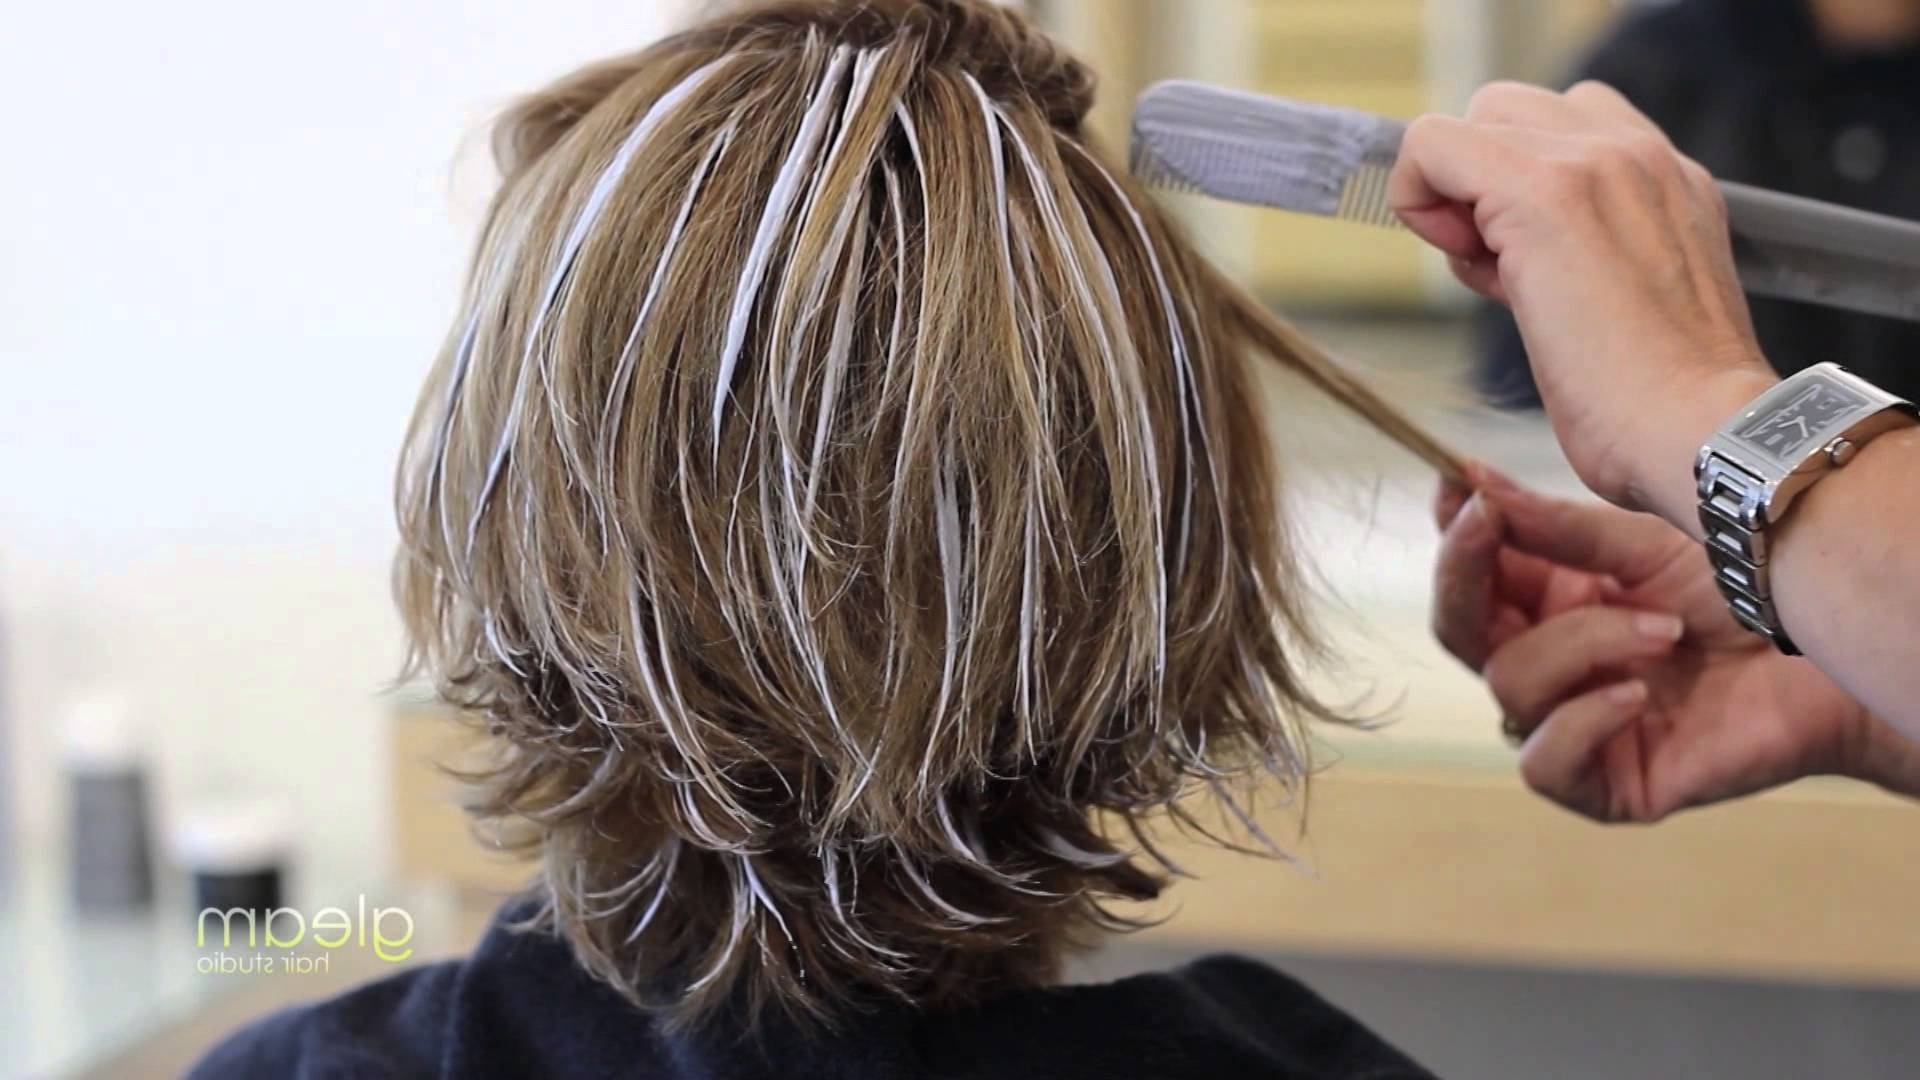 Balayage Highlight Short Hair – Gleam Hair Studio – Miami – – Youtube For Trendy Shaggy Pixie Hairstyles With Balayage Highlights (View 7 of 20)